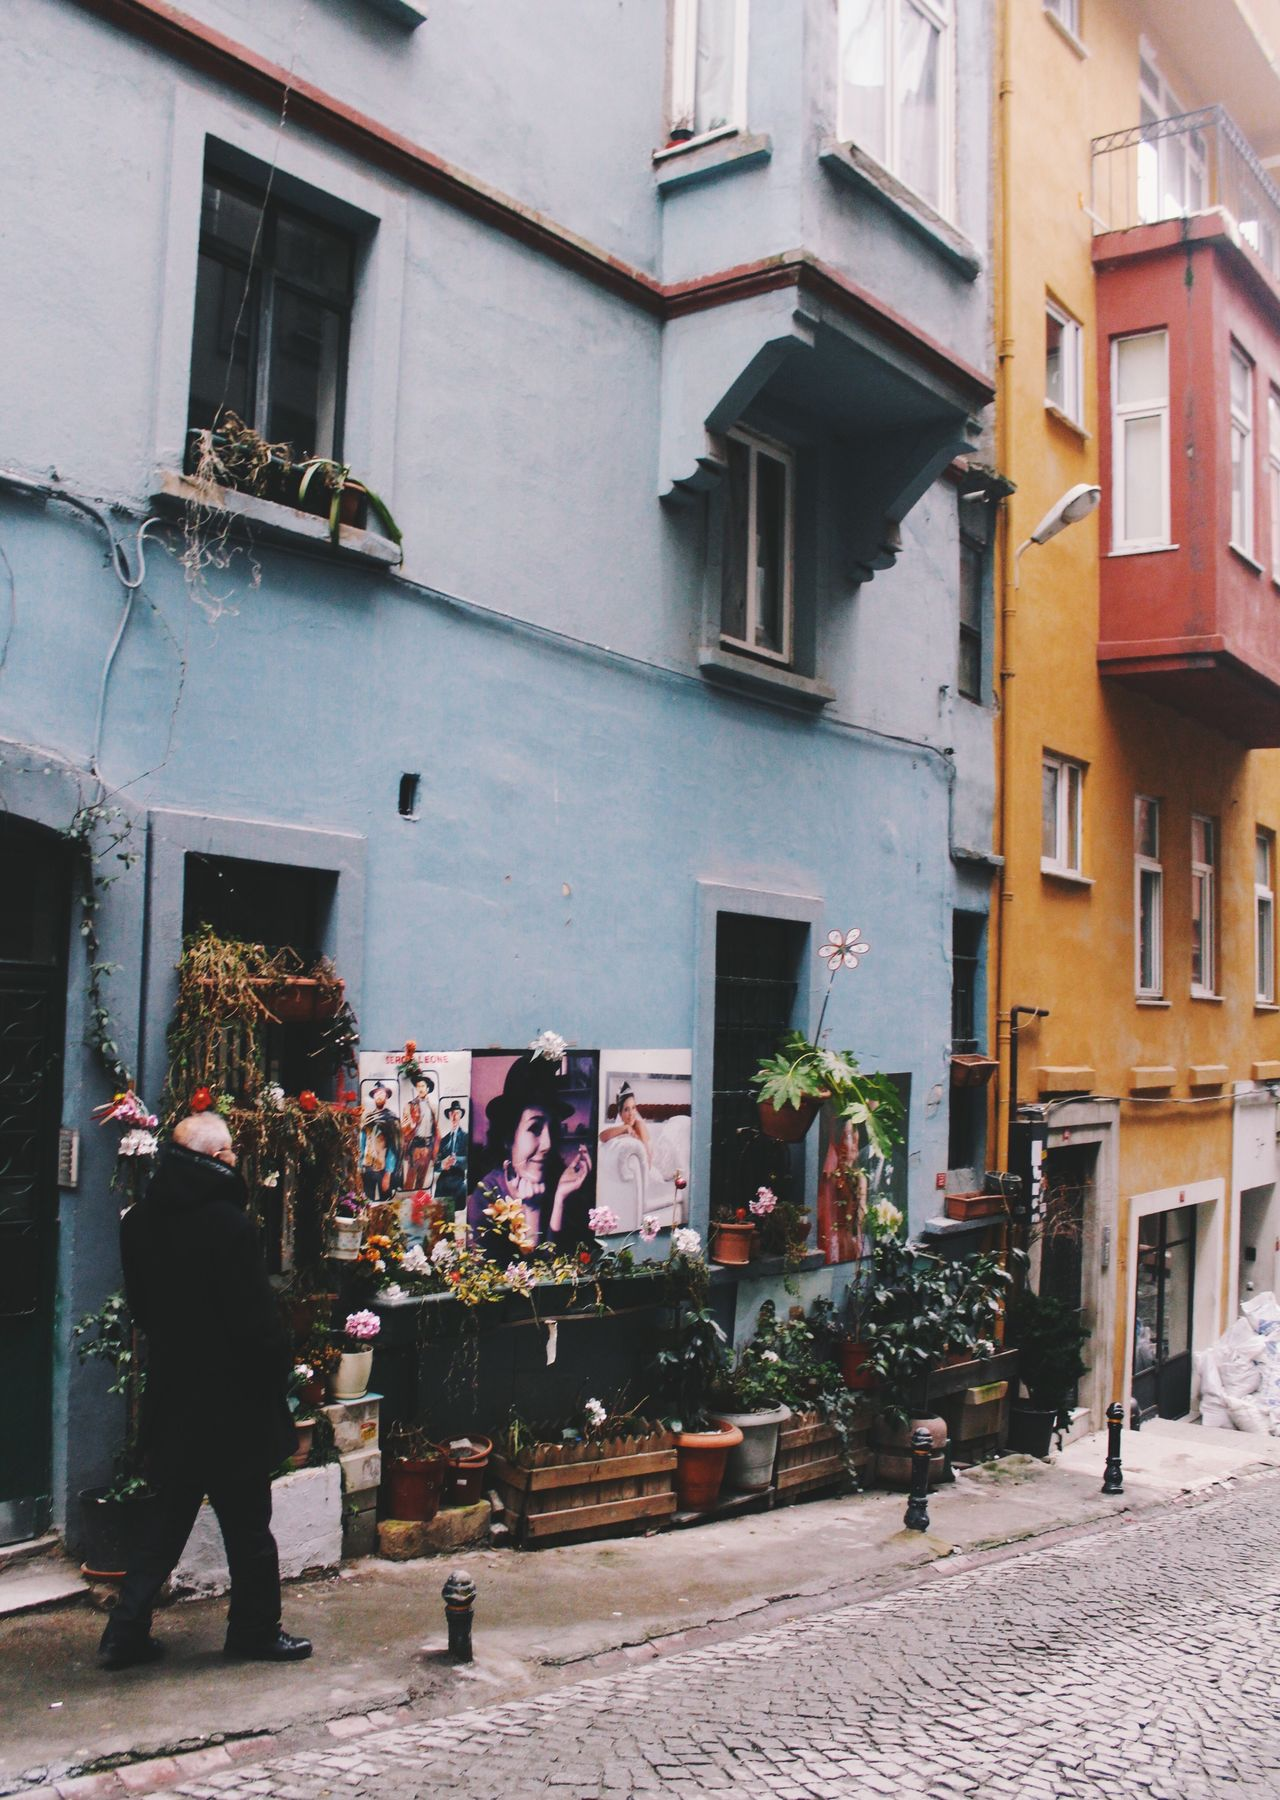 Istanbul Building Exterior Built Structure Architecture Outdoors Real People One Person City Men Day Adults Only People Adult One Man Only